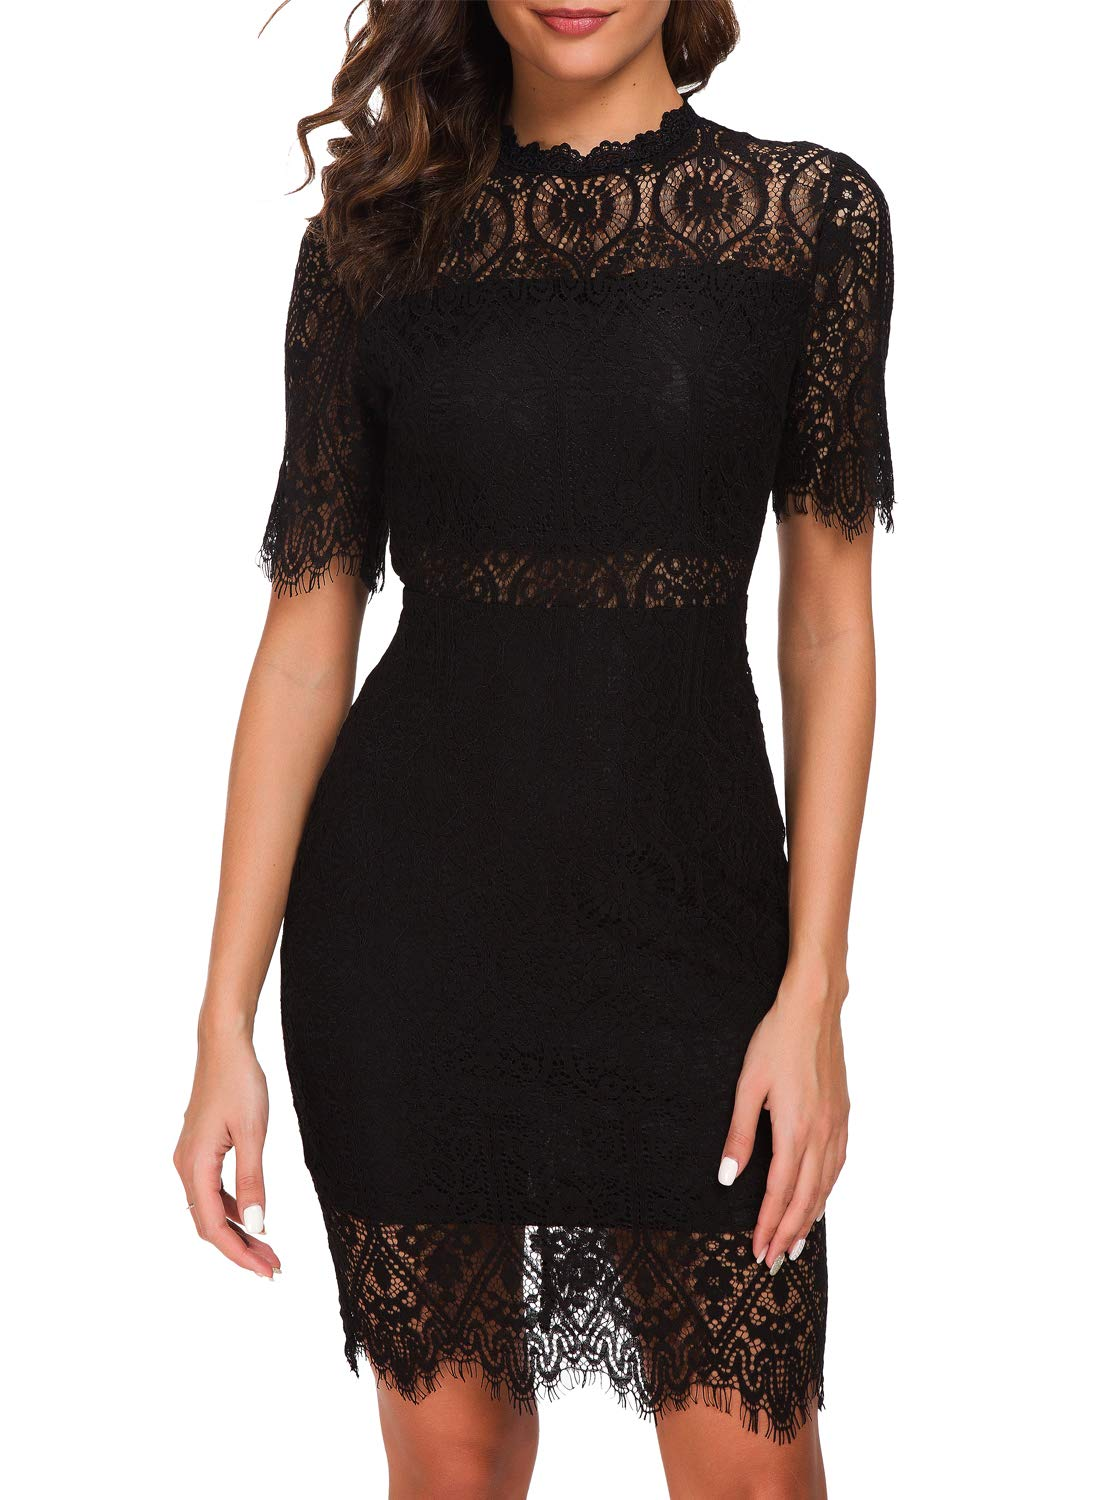 Party Dresses - Women's Elegant High Neck Short Sleeves Lace Cocktail Party Dress